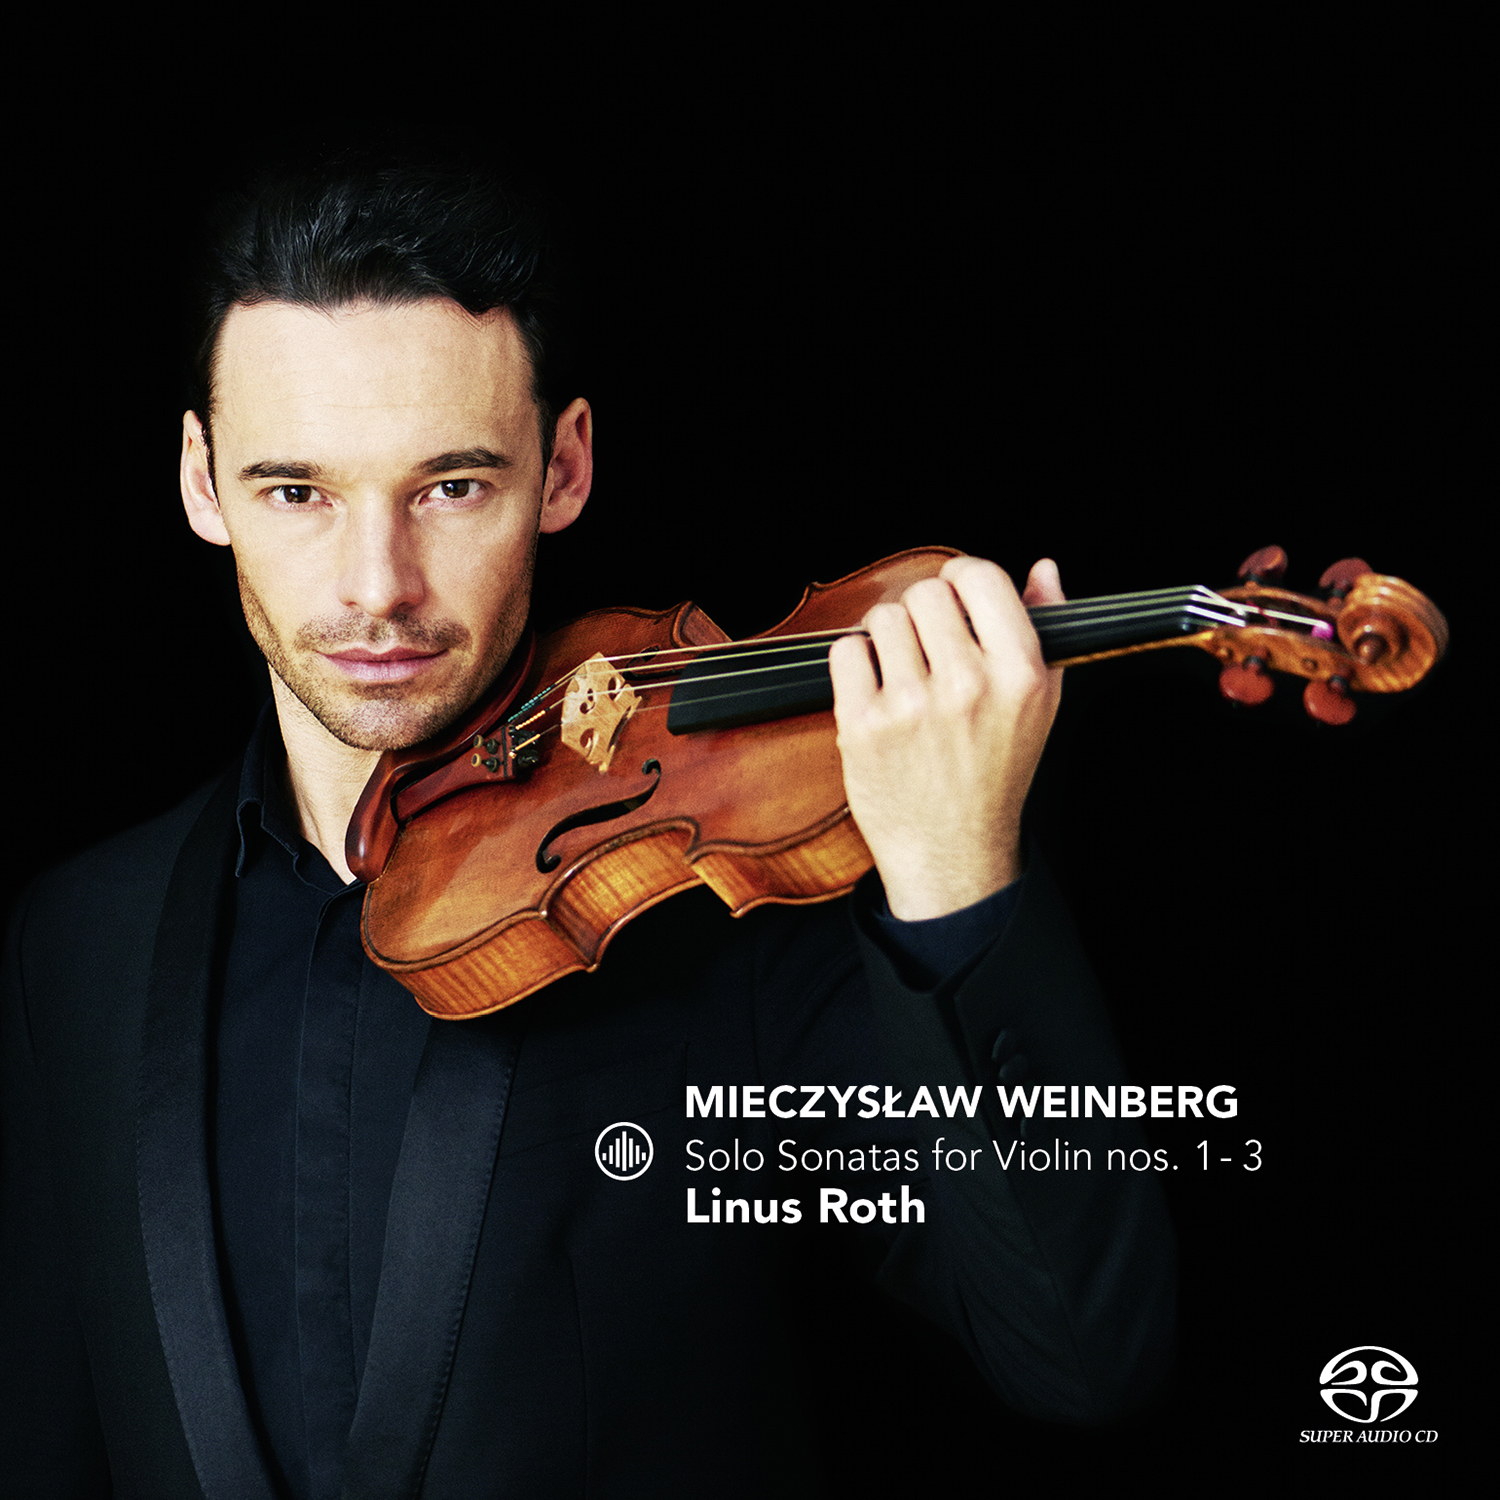 IN REVIEW: Mieczysław Weinberg & Dmitri Shostakovich - SOLO SONATAS FOR VIOLIN NOS. 1 - 3 & 3 FANTASTIC DANCES (Challege Classics CC72688)